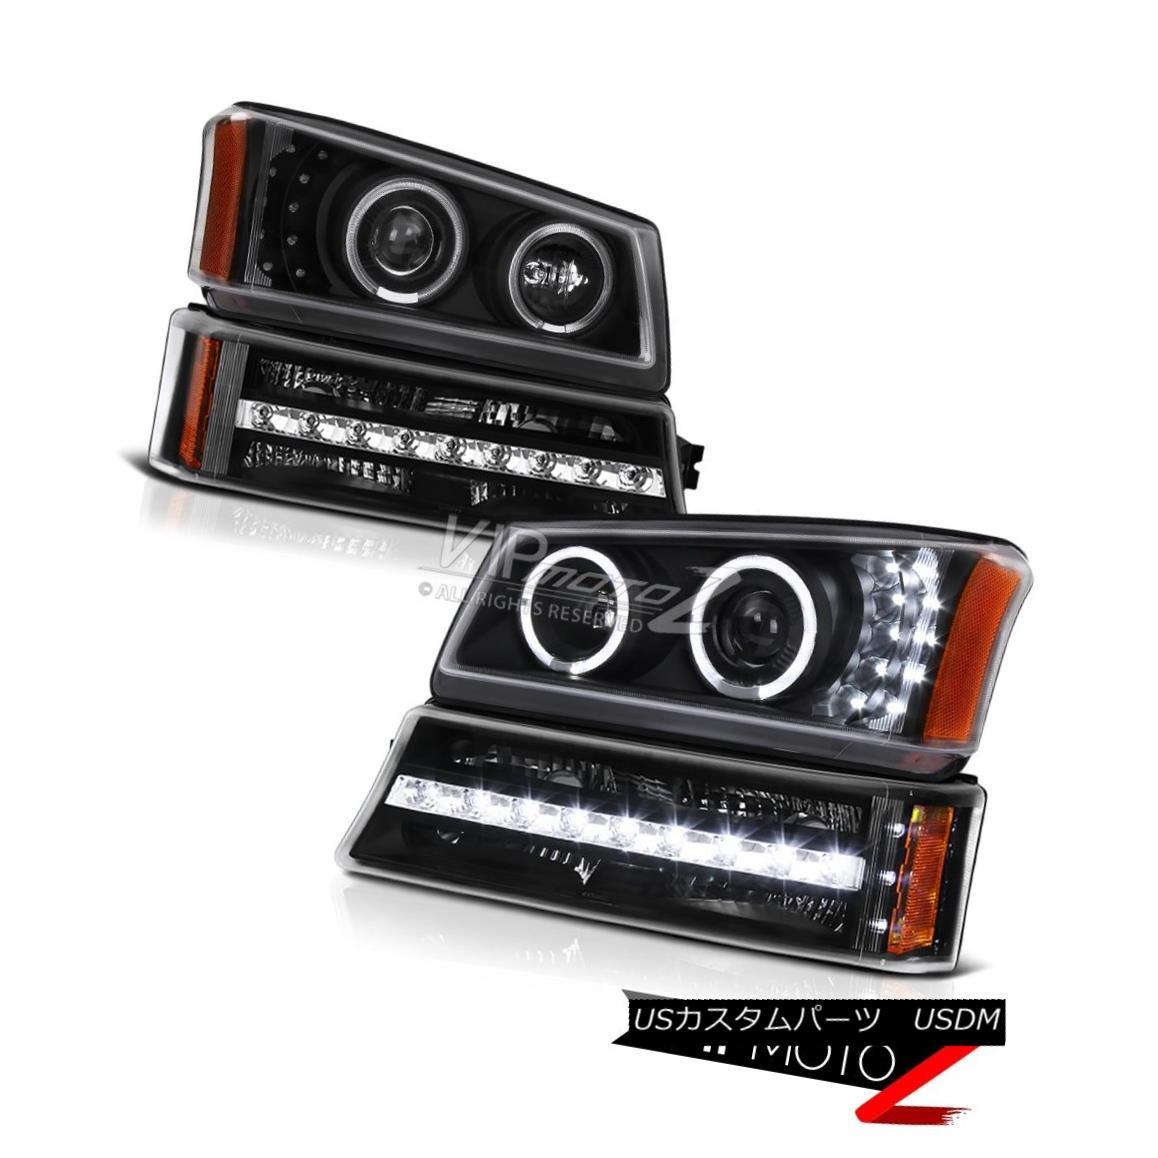 ヘッドライト 2003-2006 Avalanche 2500 Black signal light projector headlamps